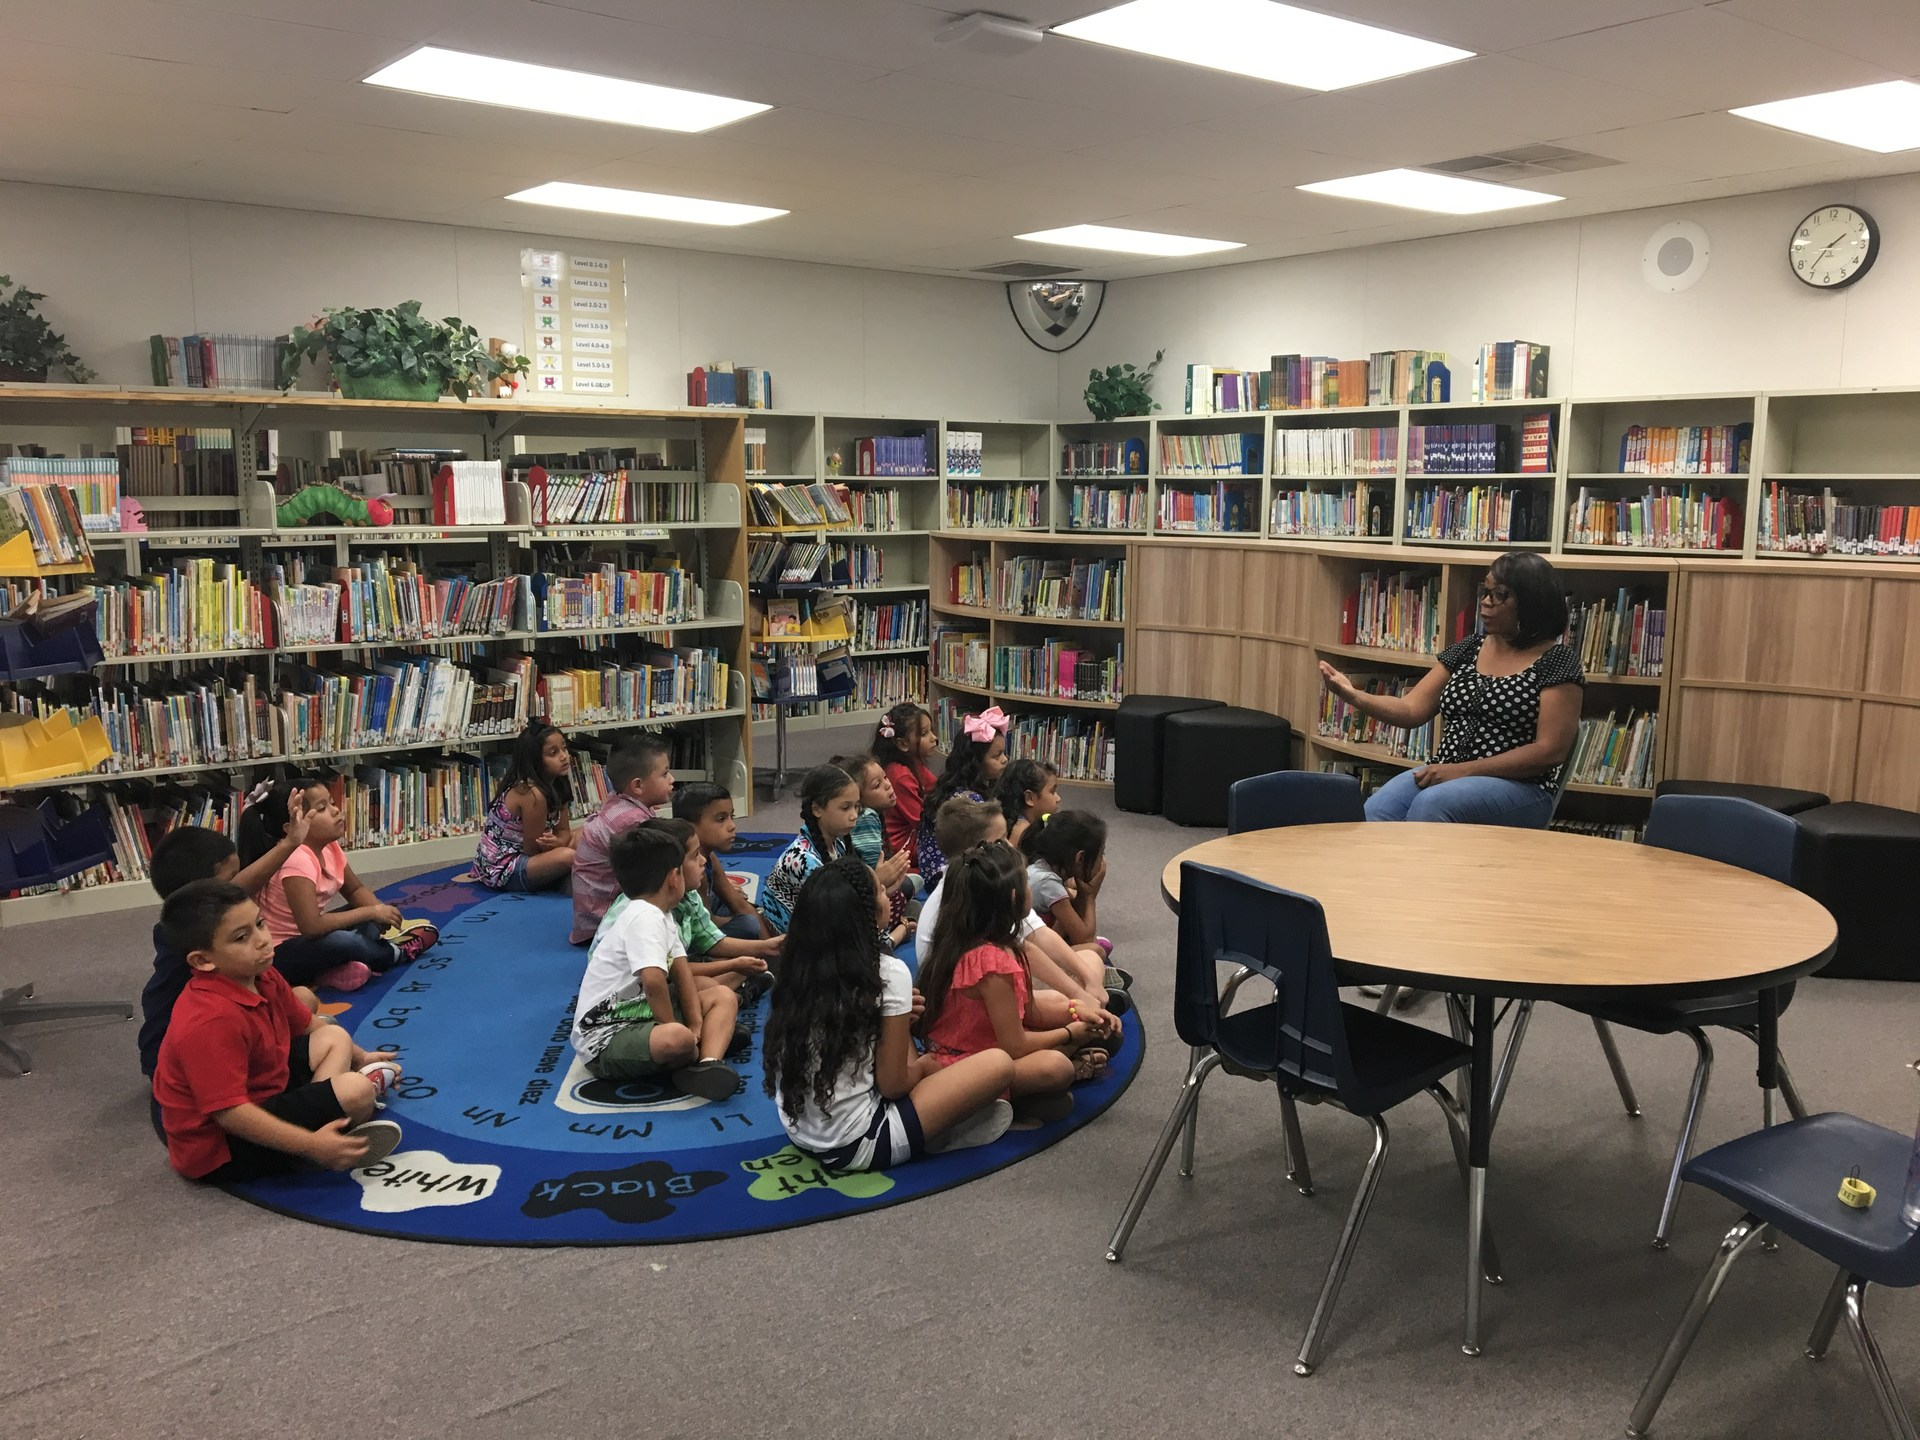 librarian working with a class at the carpet in the library